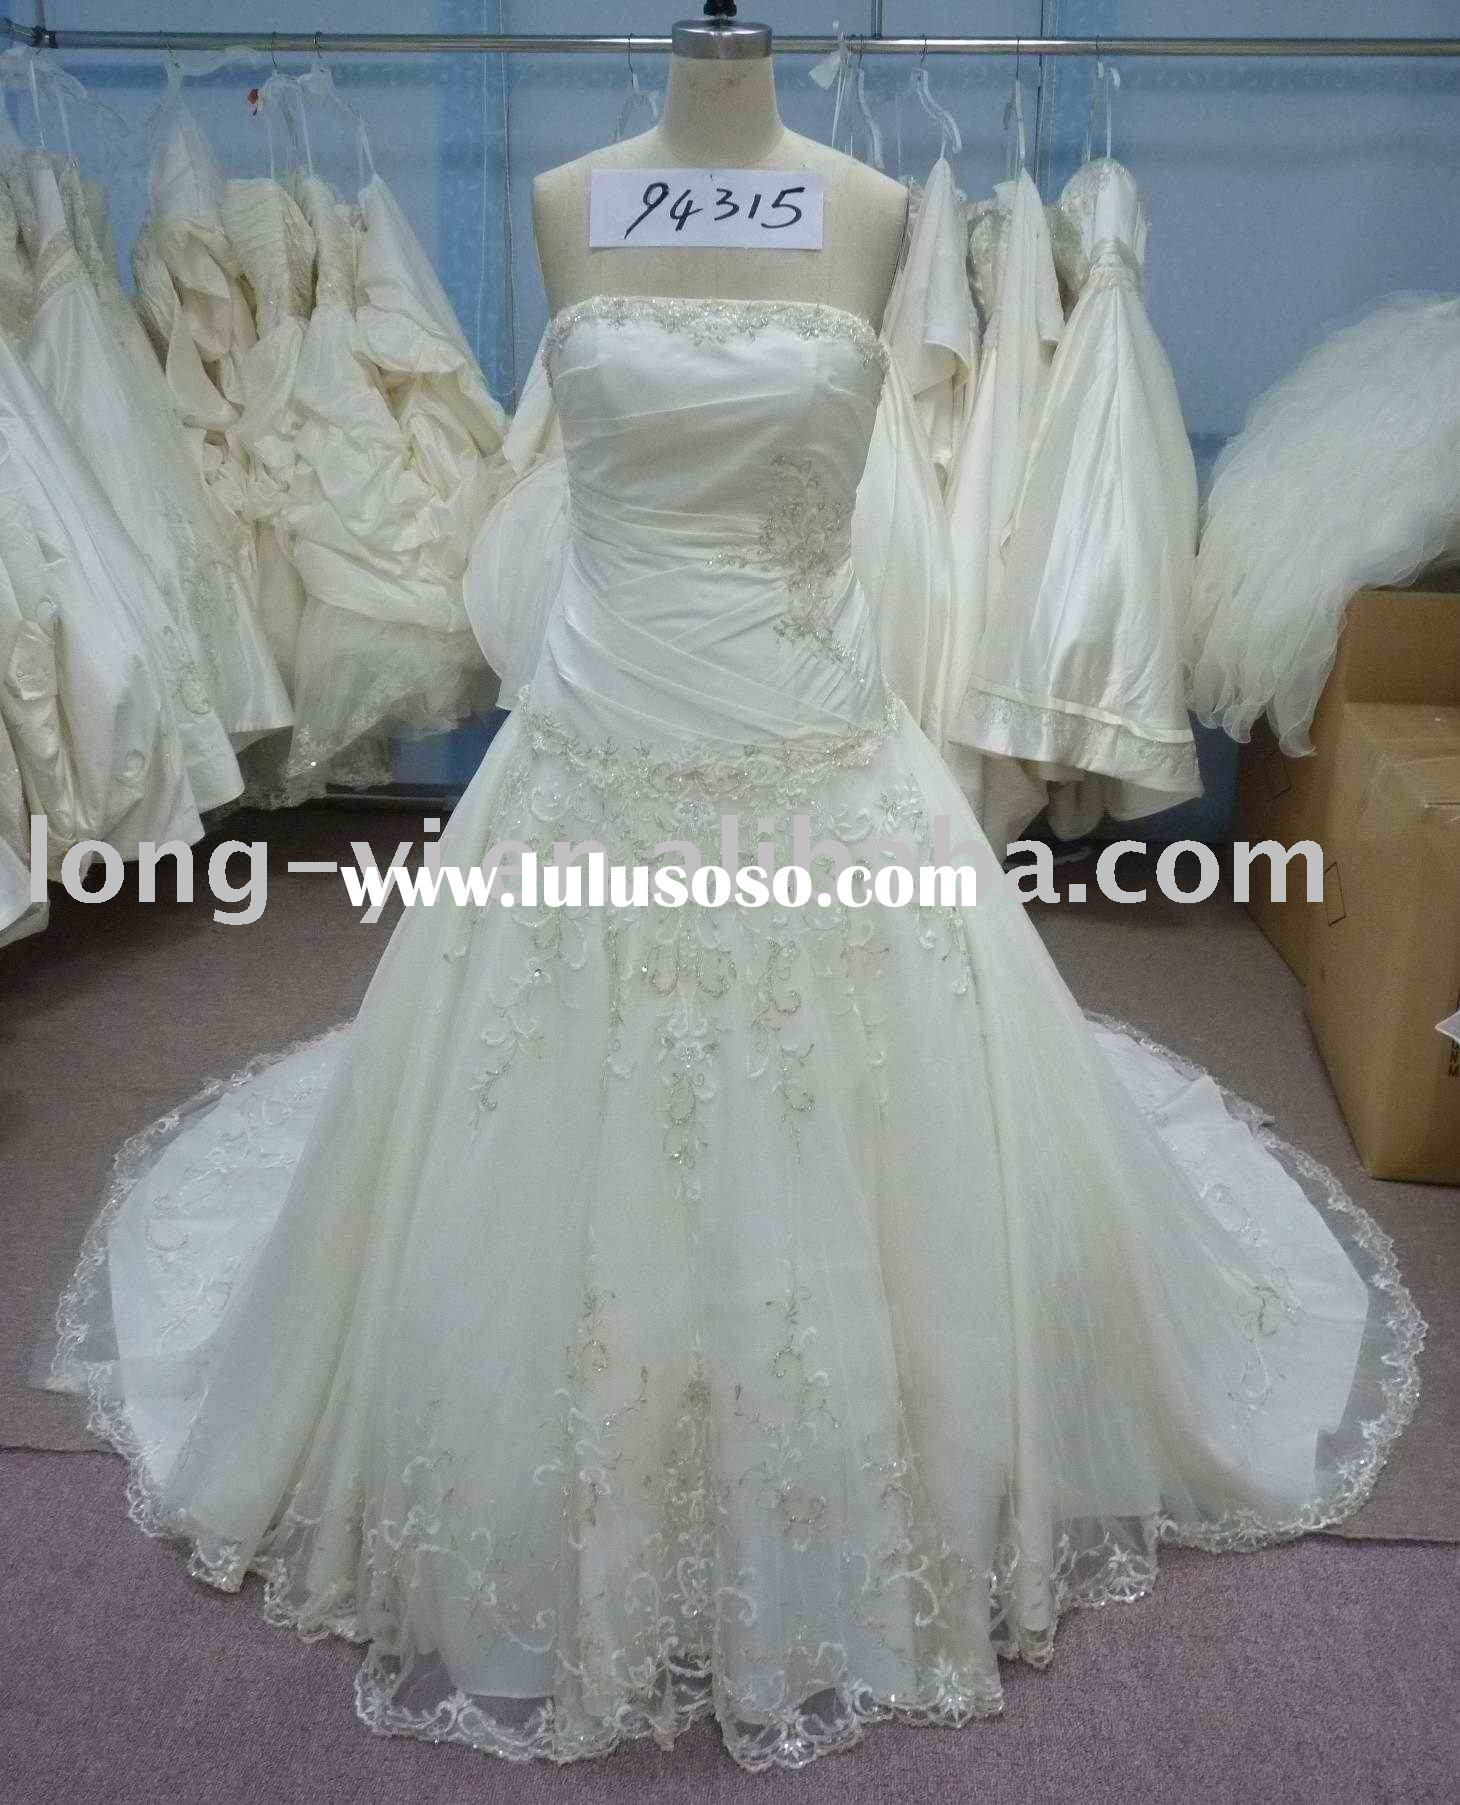 Bridal Shoe Stores In Mississauga